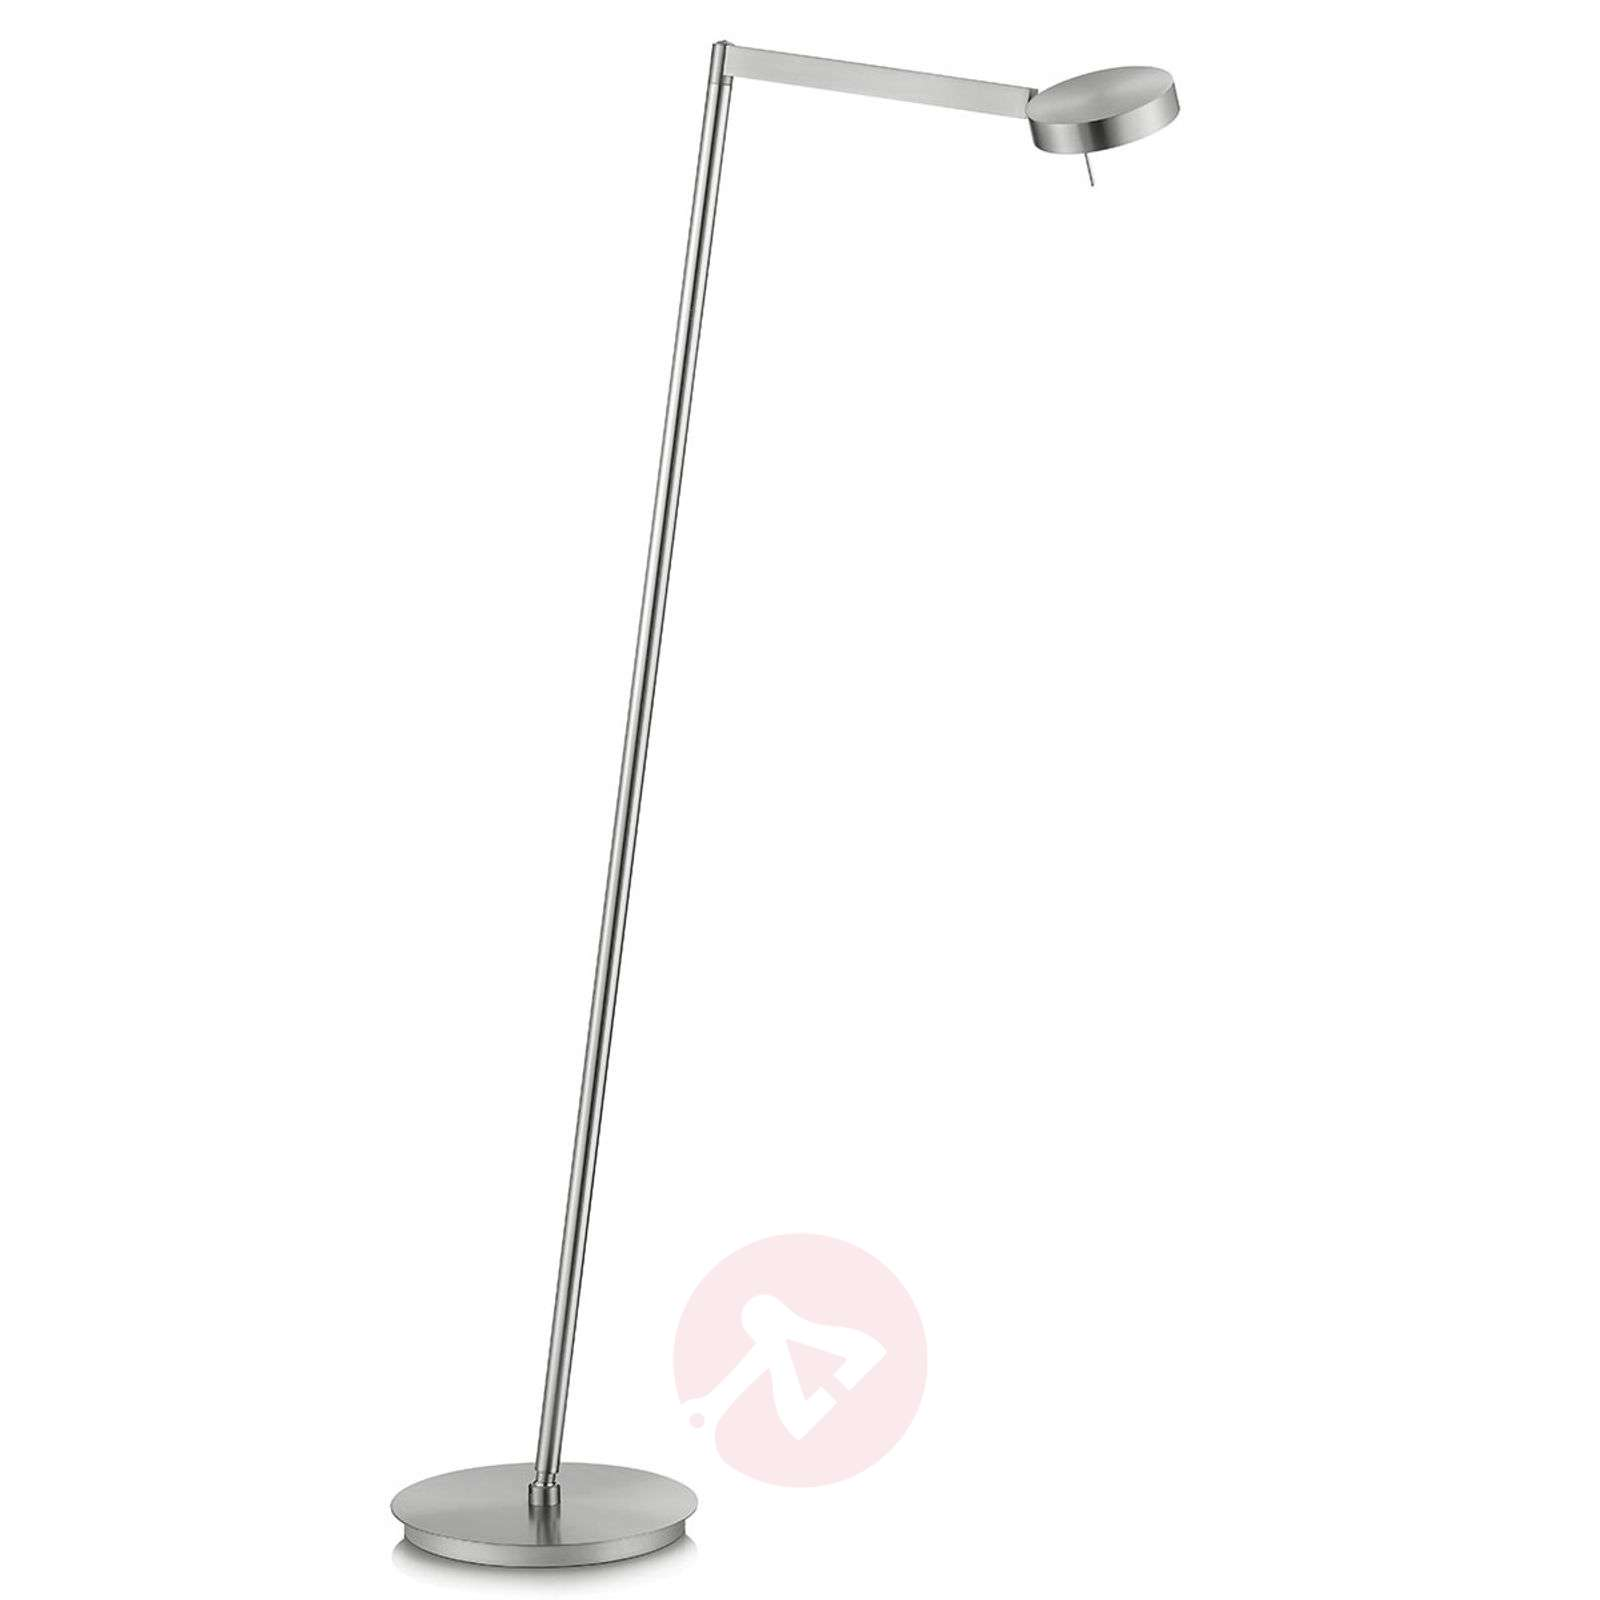 Liseuse LED Reading dimmable, nickel mat-4002687-01